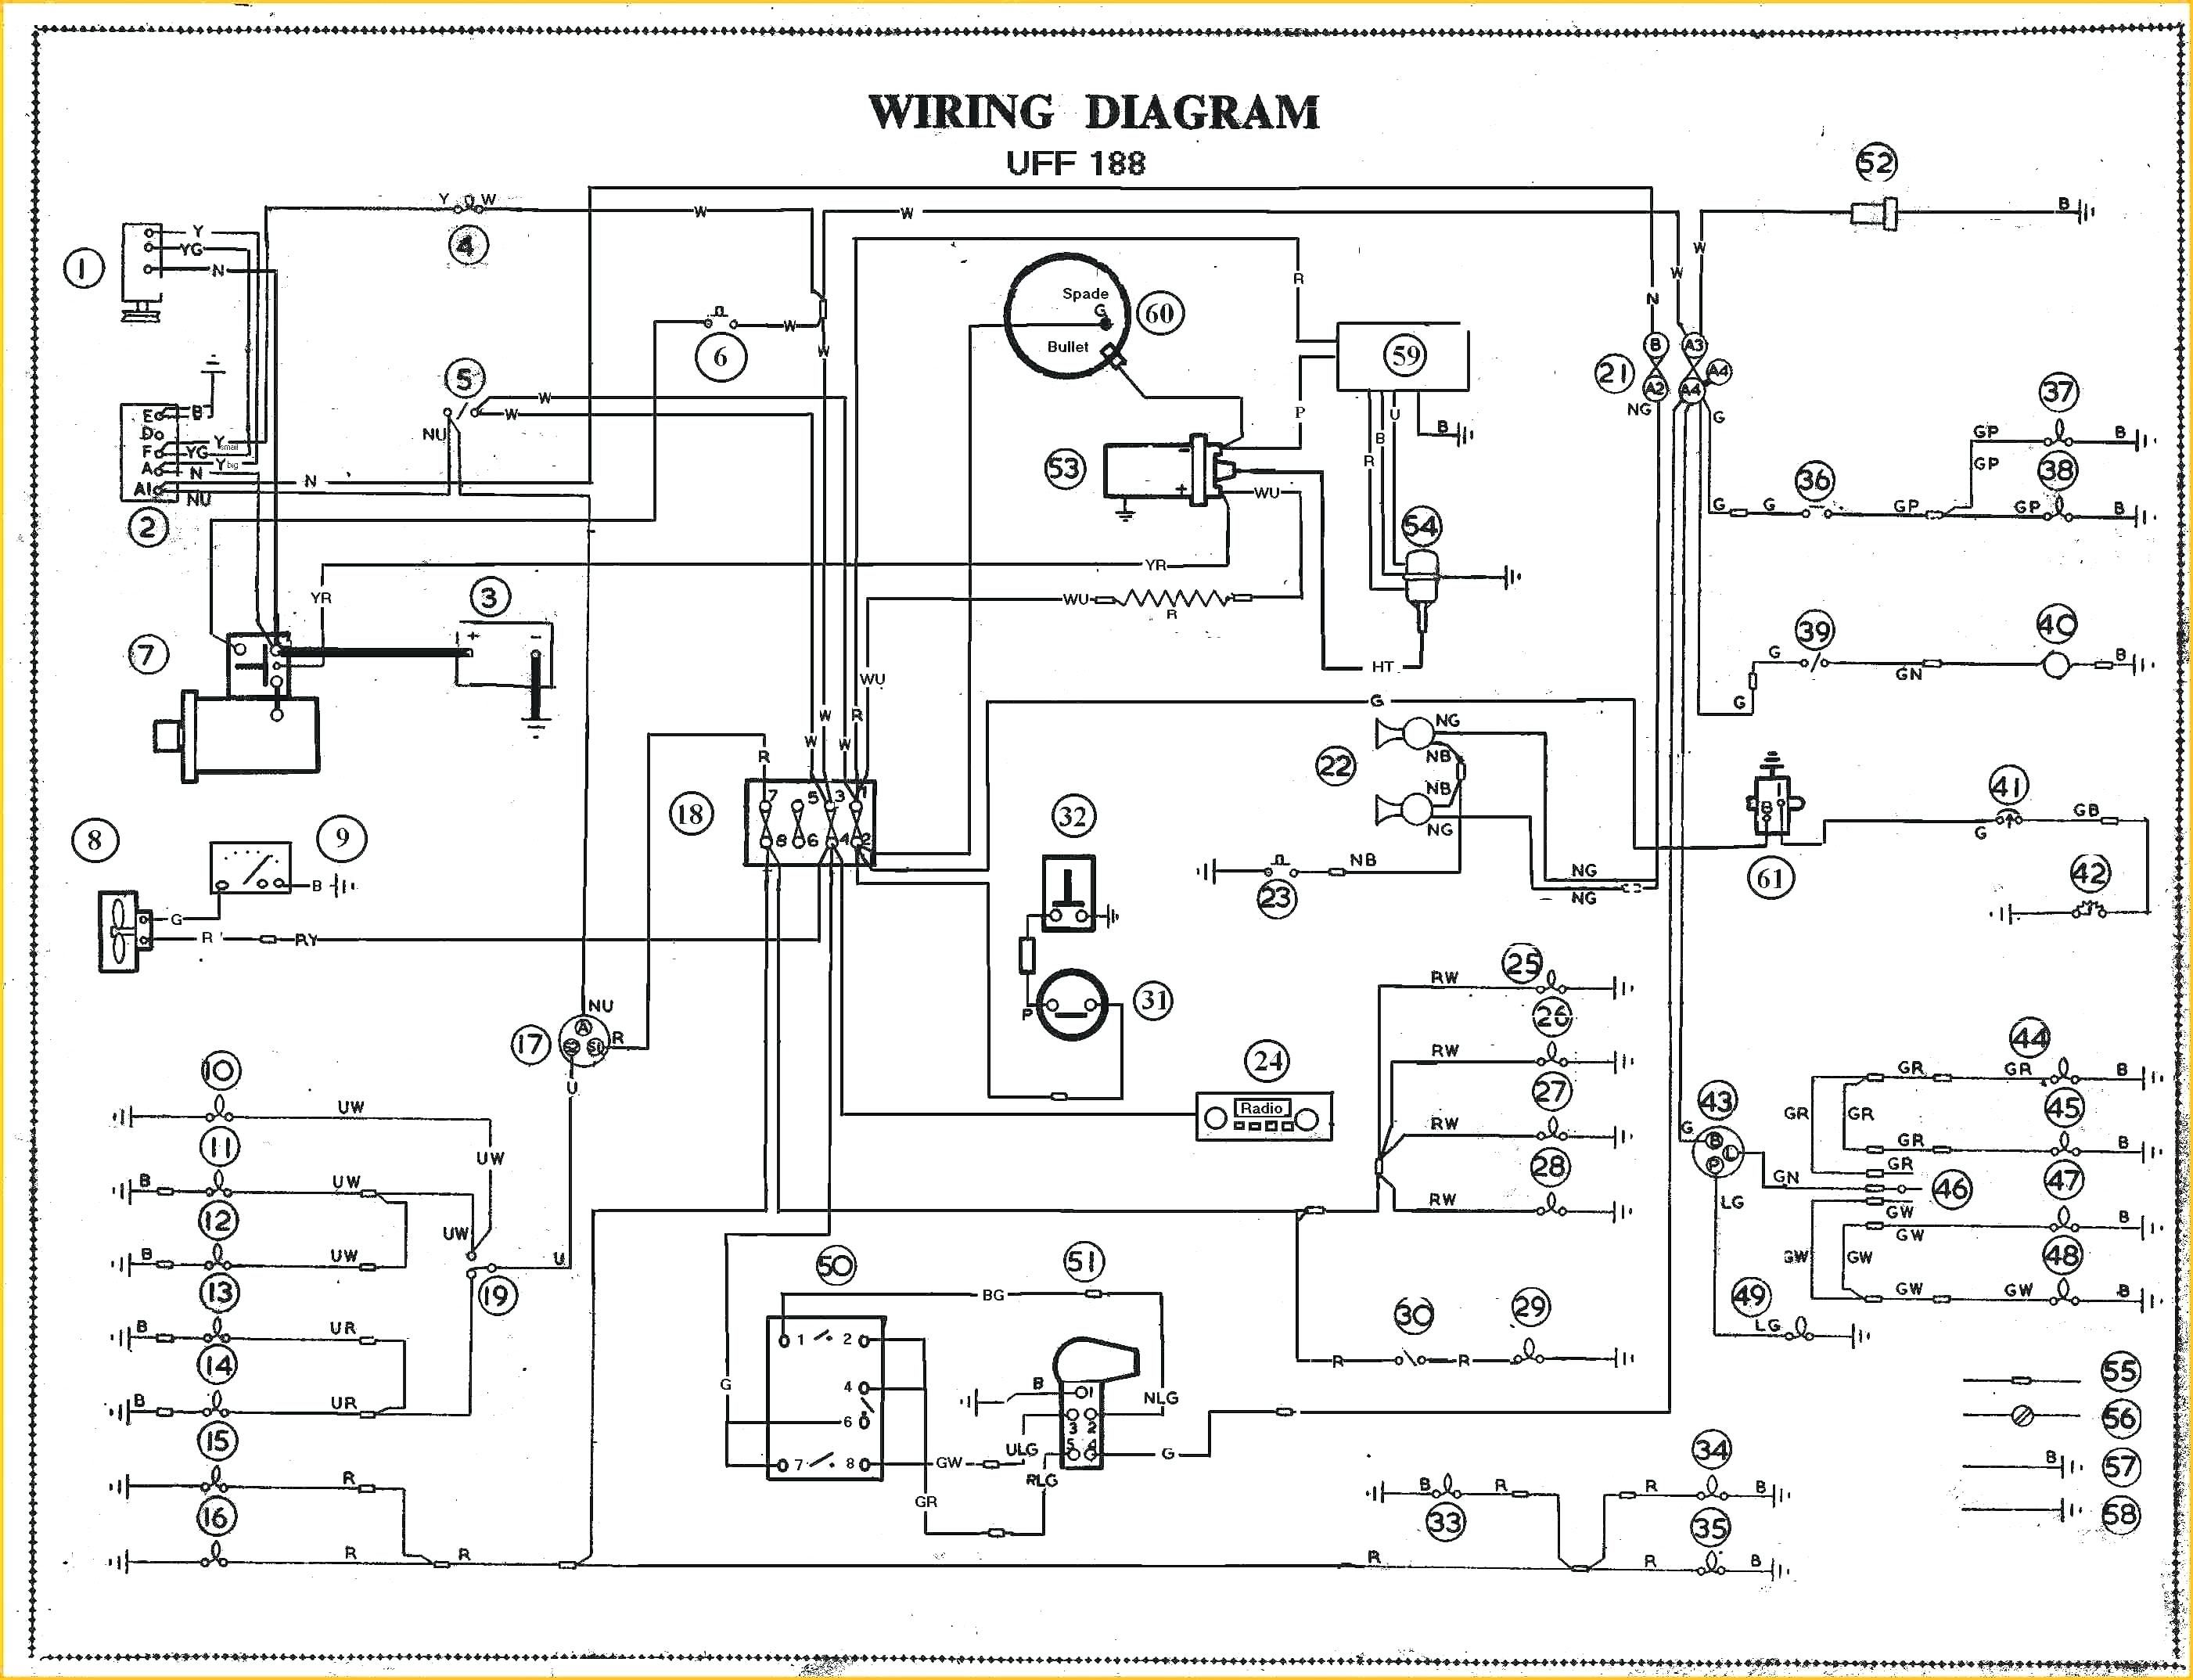 Basic Hvac Wiring Diagrams Schematics At Diagram Pdf | Diagram, Diagram  design, Hvac | Hvac Wiring Schematics Diagrams And Made Easy |  | Pinterest